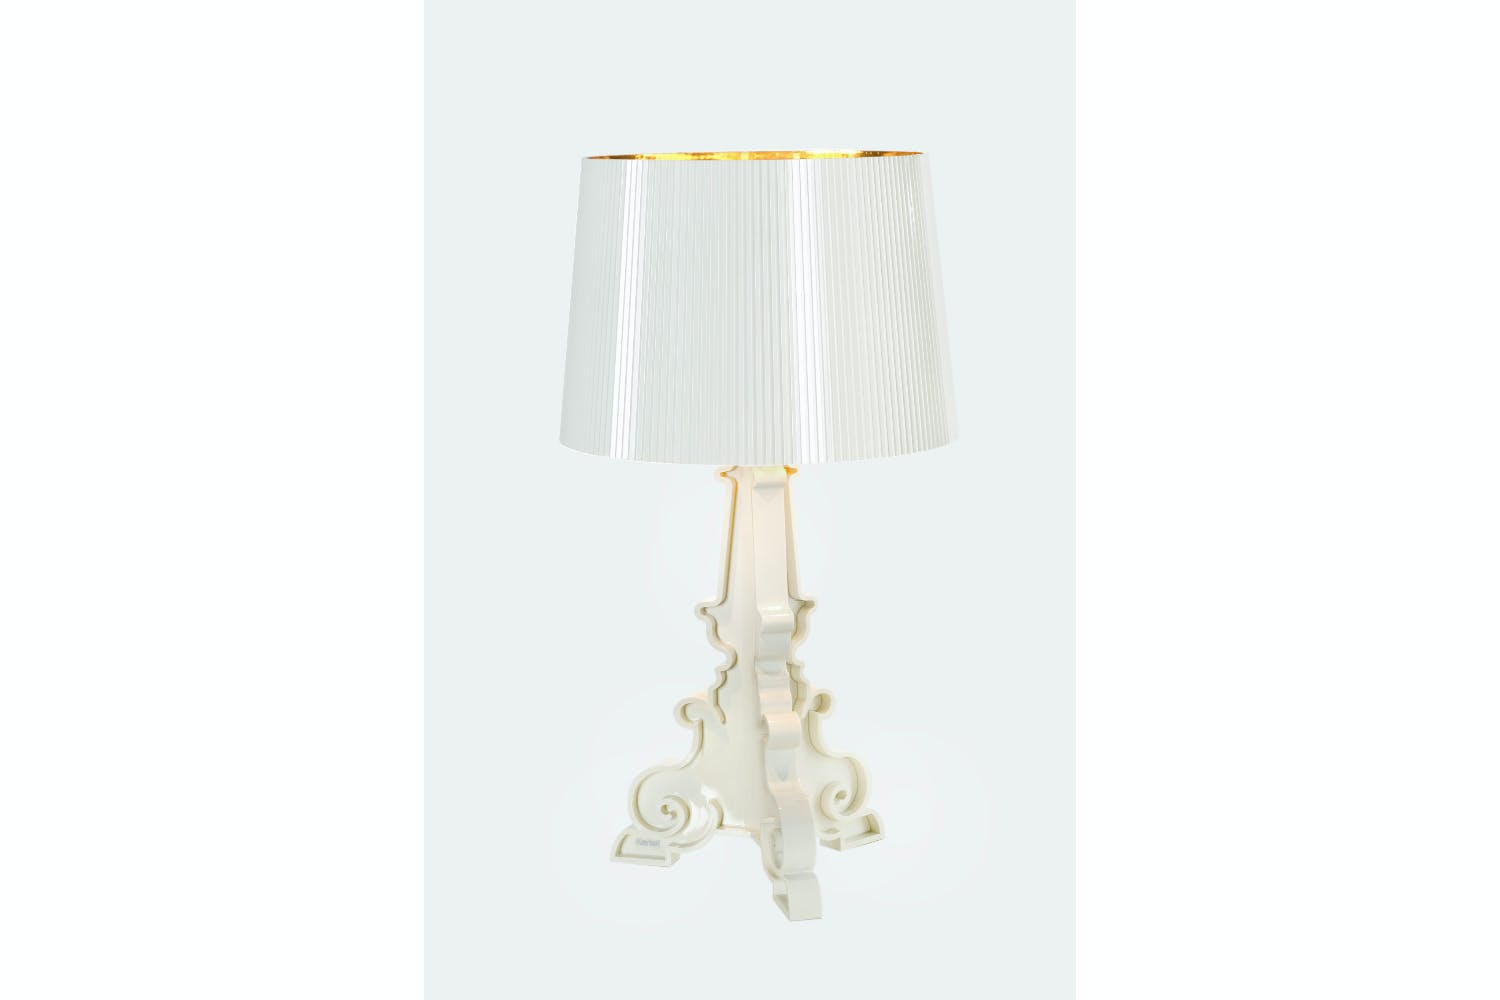 bourgie whitegold table lamp by ferruccio laviani for kartell bourgie lamp ferruccio laviani